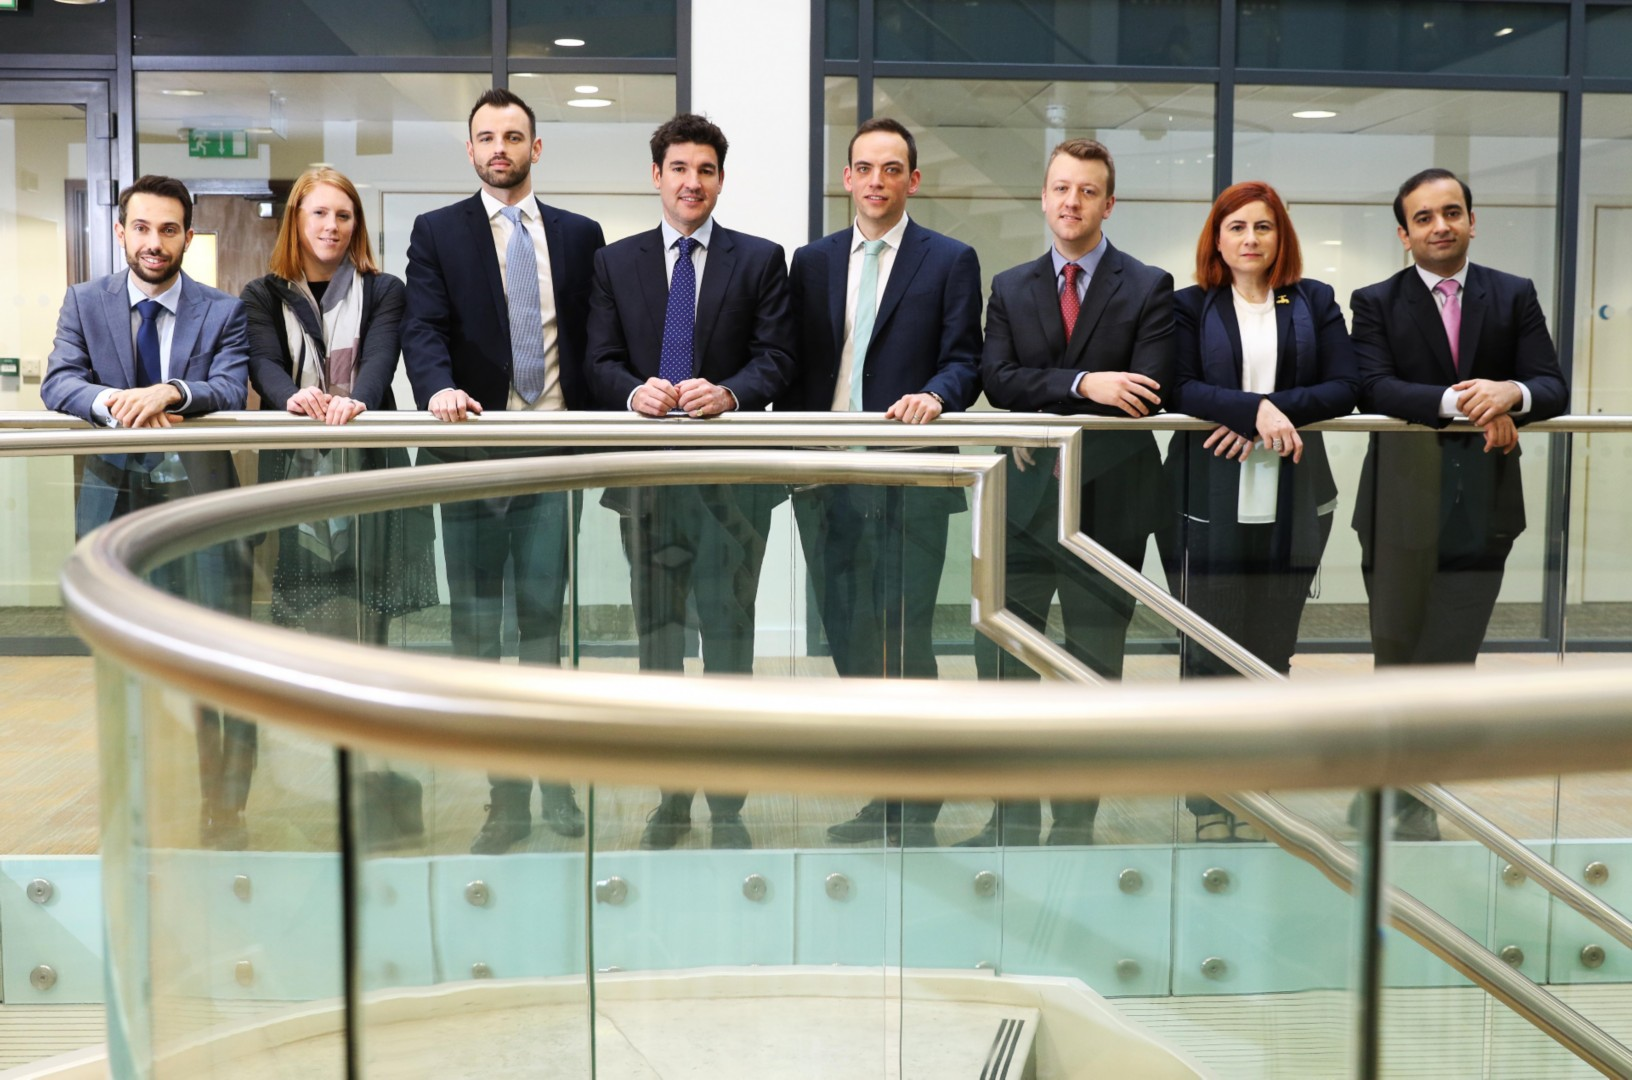 Raft of new appointments and promotions at EY's Bristol office as expansion gathers pace